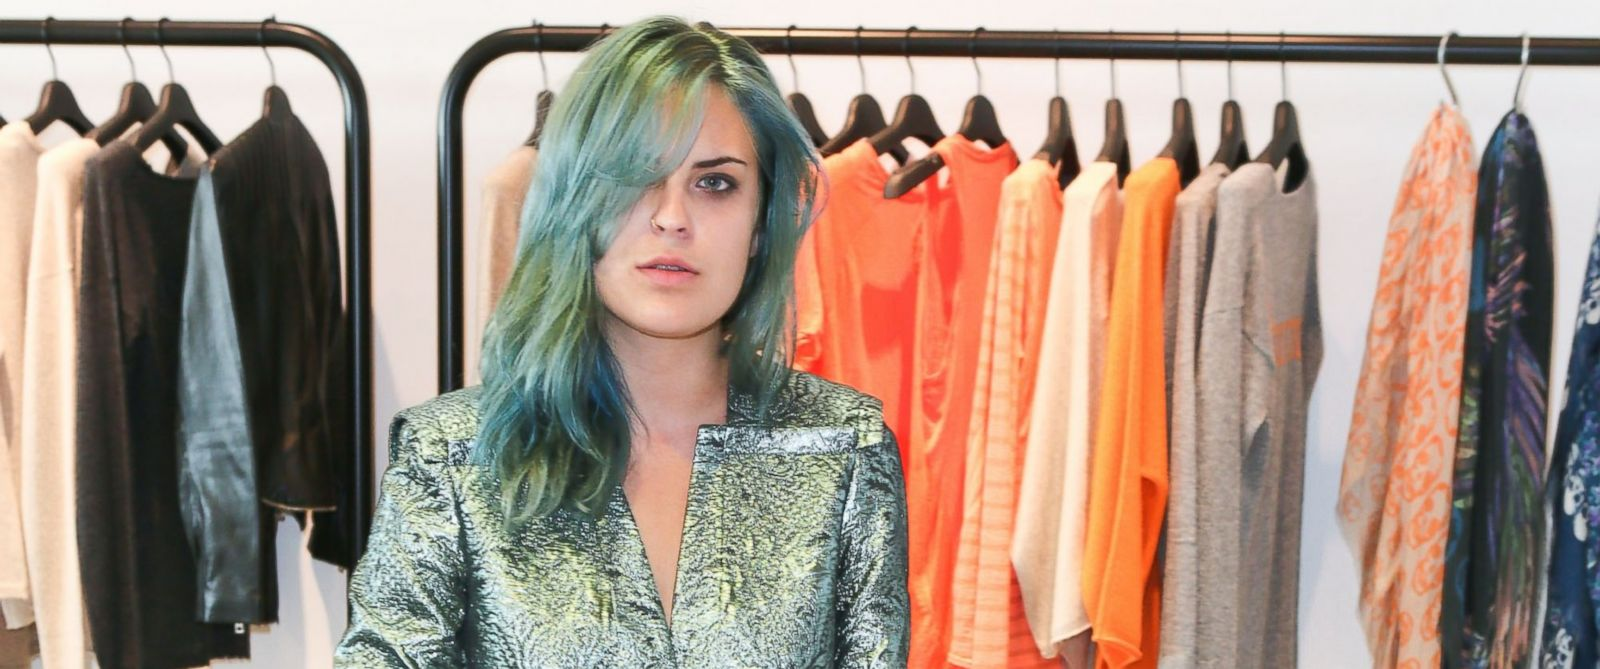 PHOTO: Tallulah Willis attends the Zadig & Voltaire Malibu store opening on May 31, 2014 in Malibu, California.